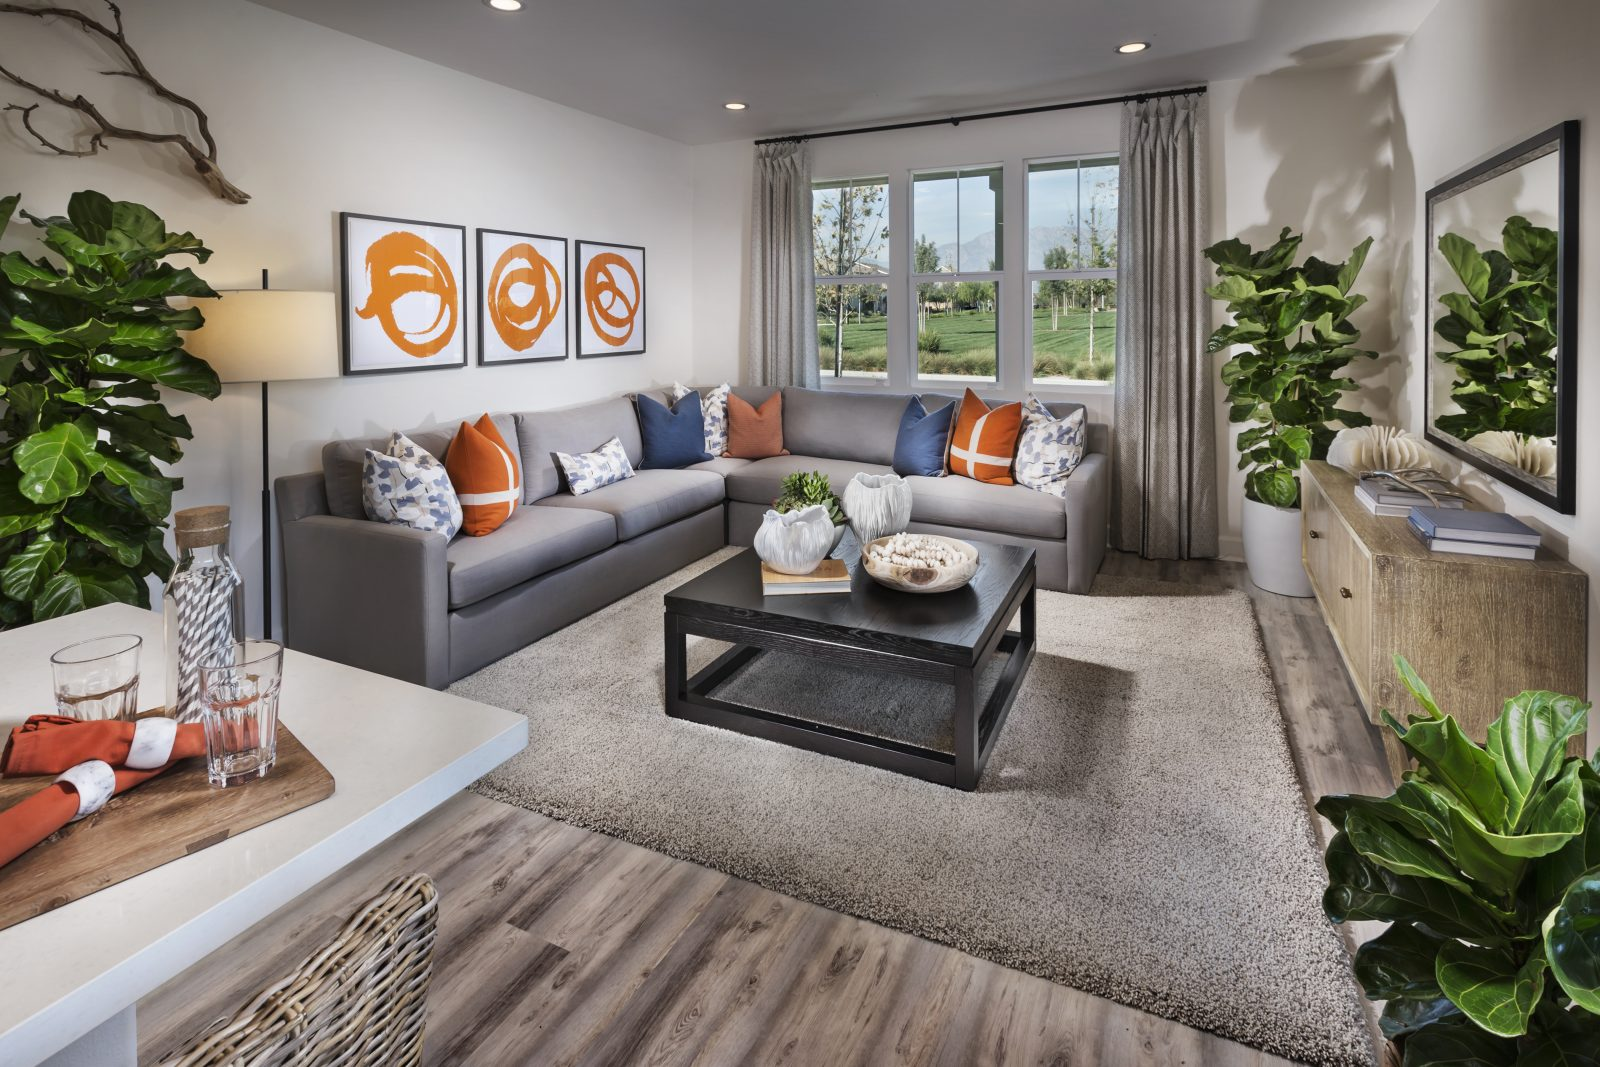 Homes For Sale In Ontario Ranch Arborel At New Haven Aluminum Wiring California Living Room Aborel Ca Brookfield Residential